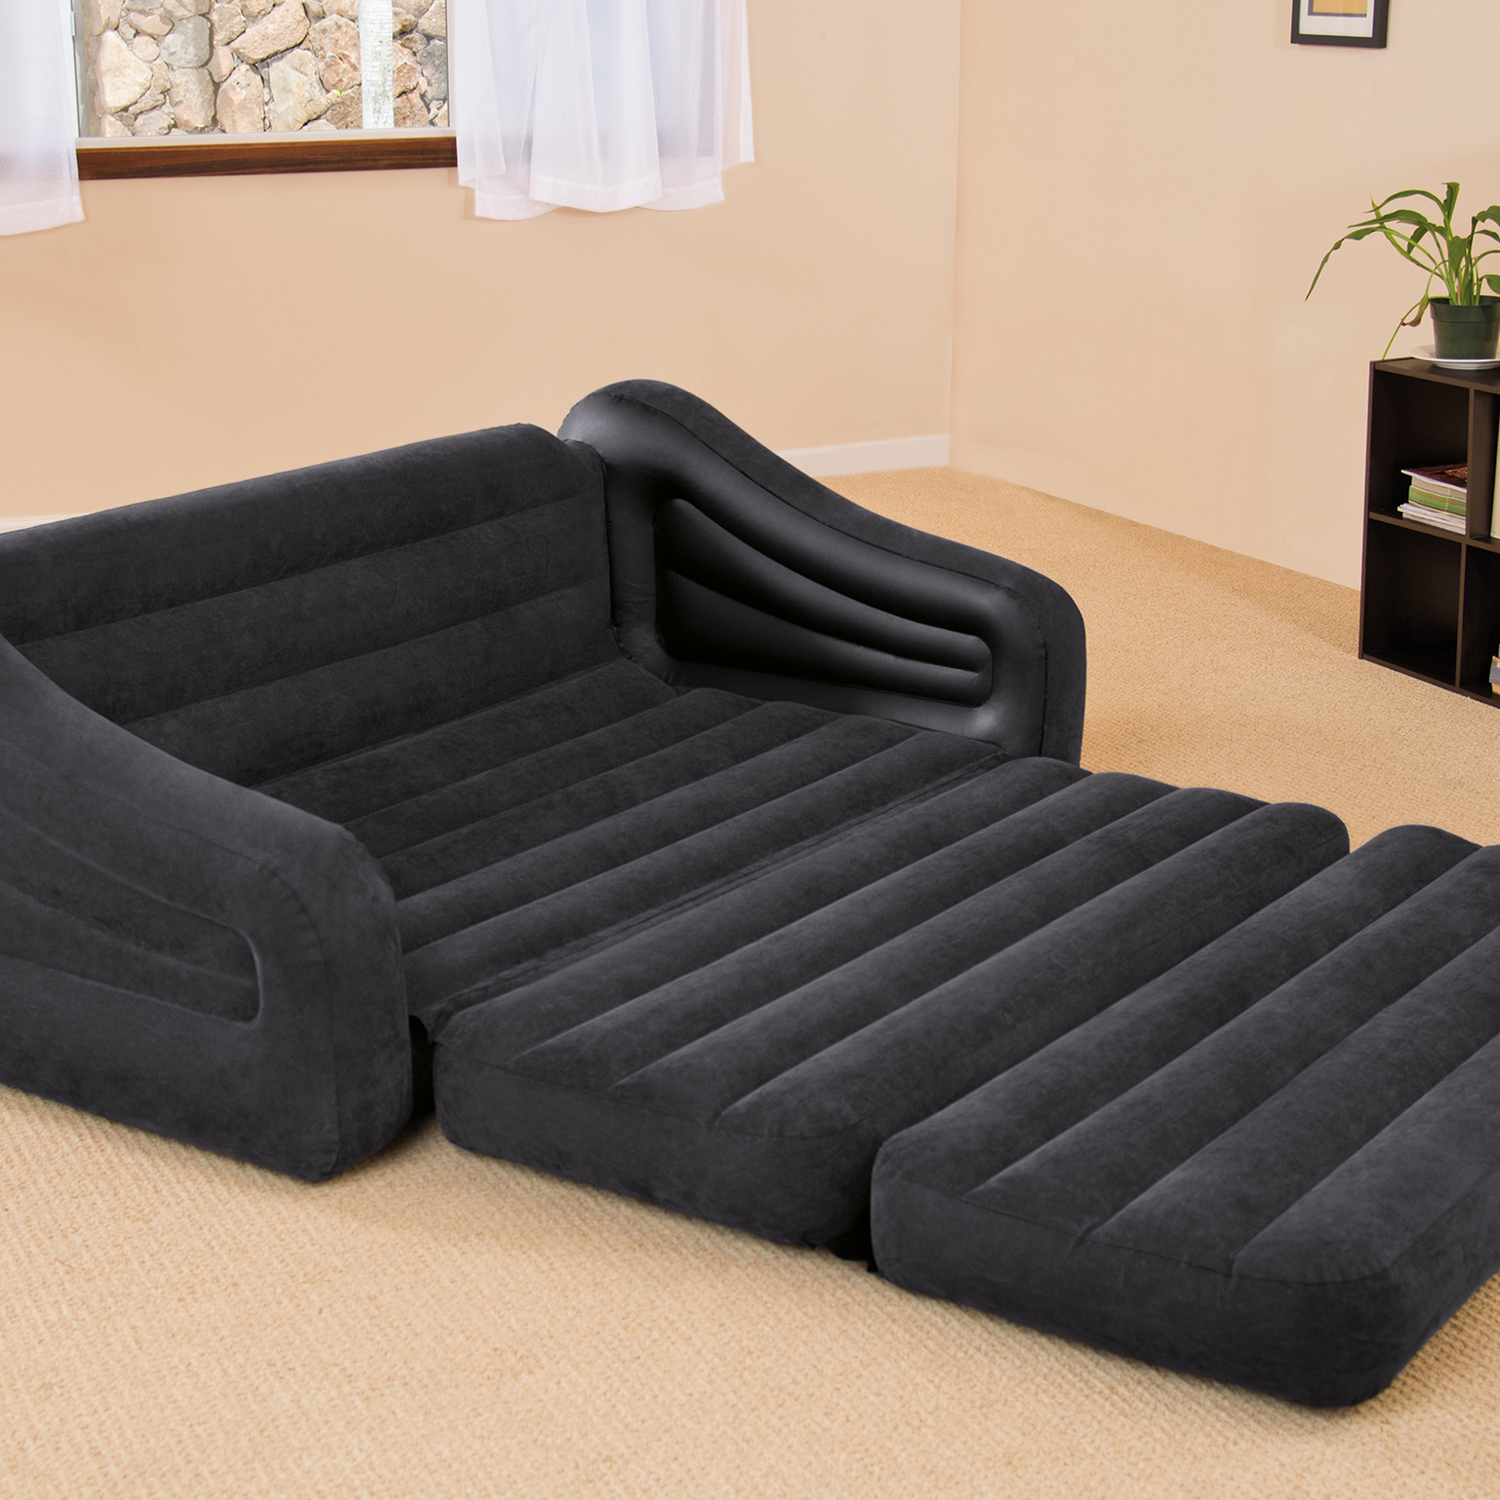 Intex inflatable queen size pull out futon sofa couch bed dark gray 68566ep ebay Loveseat with pullout bed